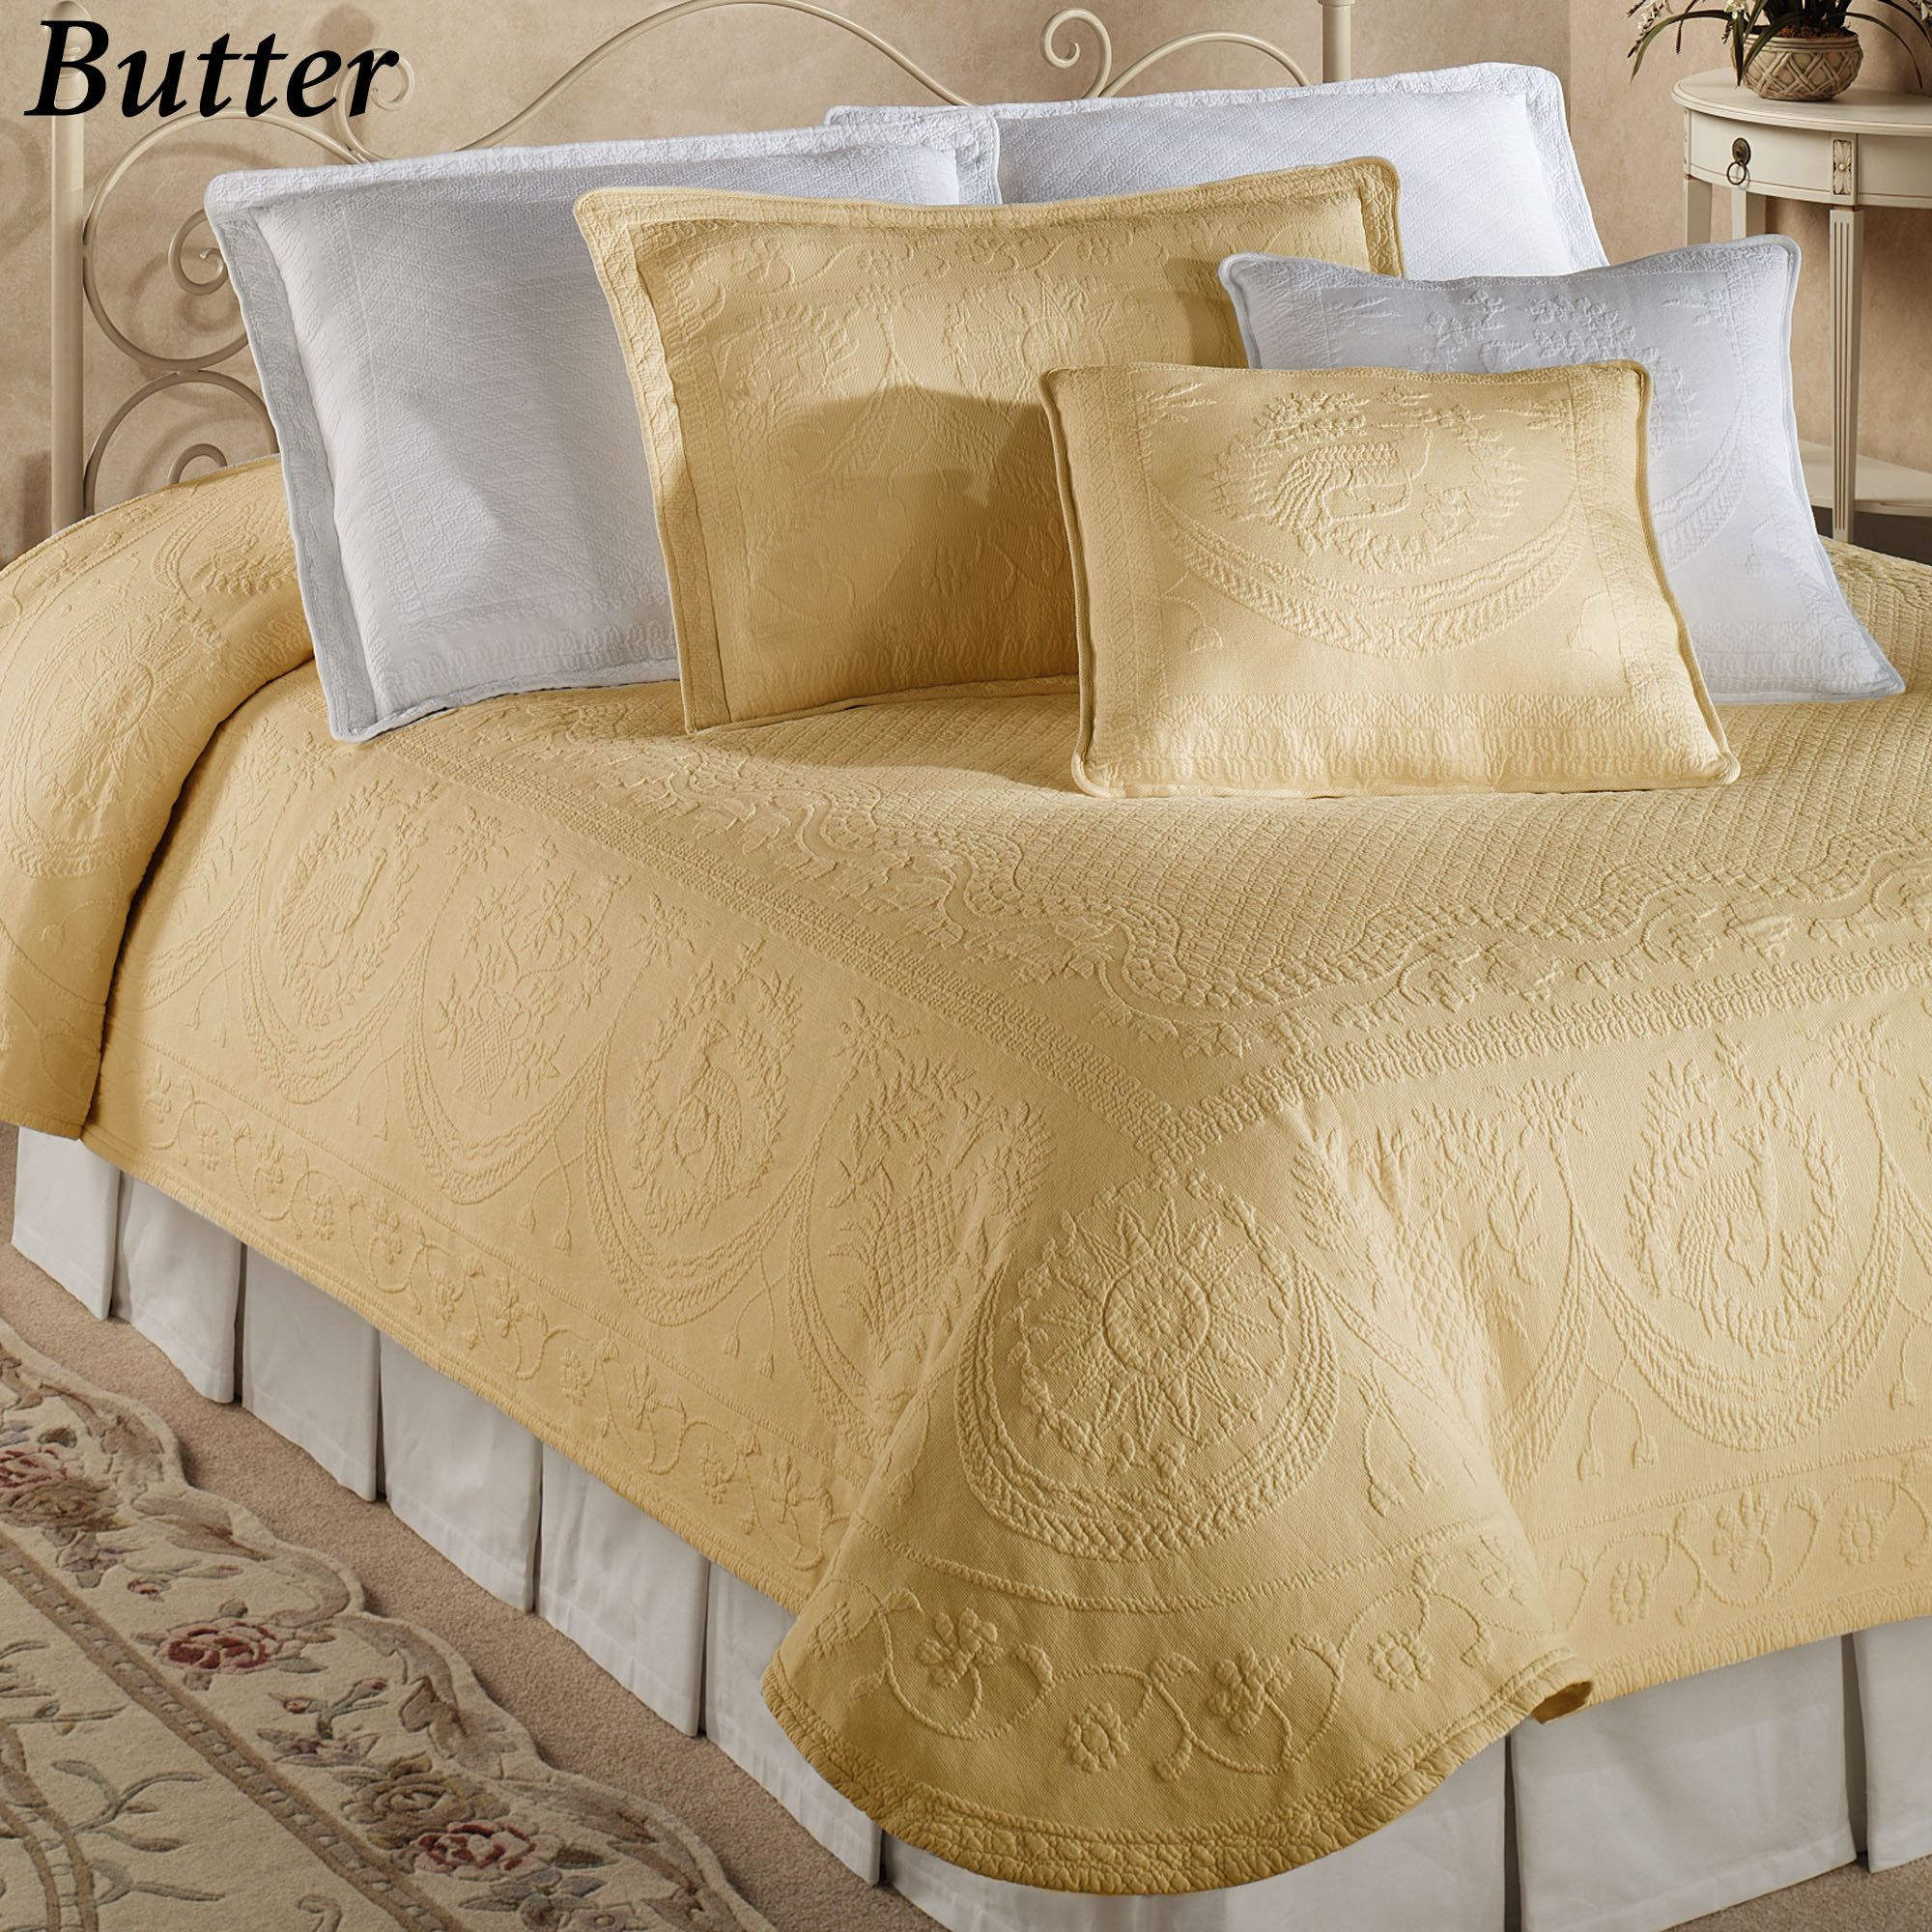 Superb King Charles Matelasse Coverlet Bedding